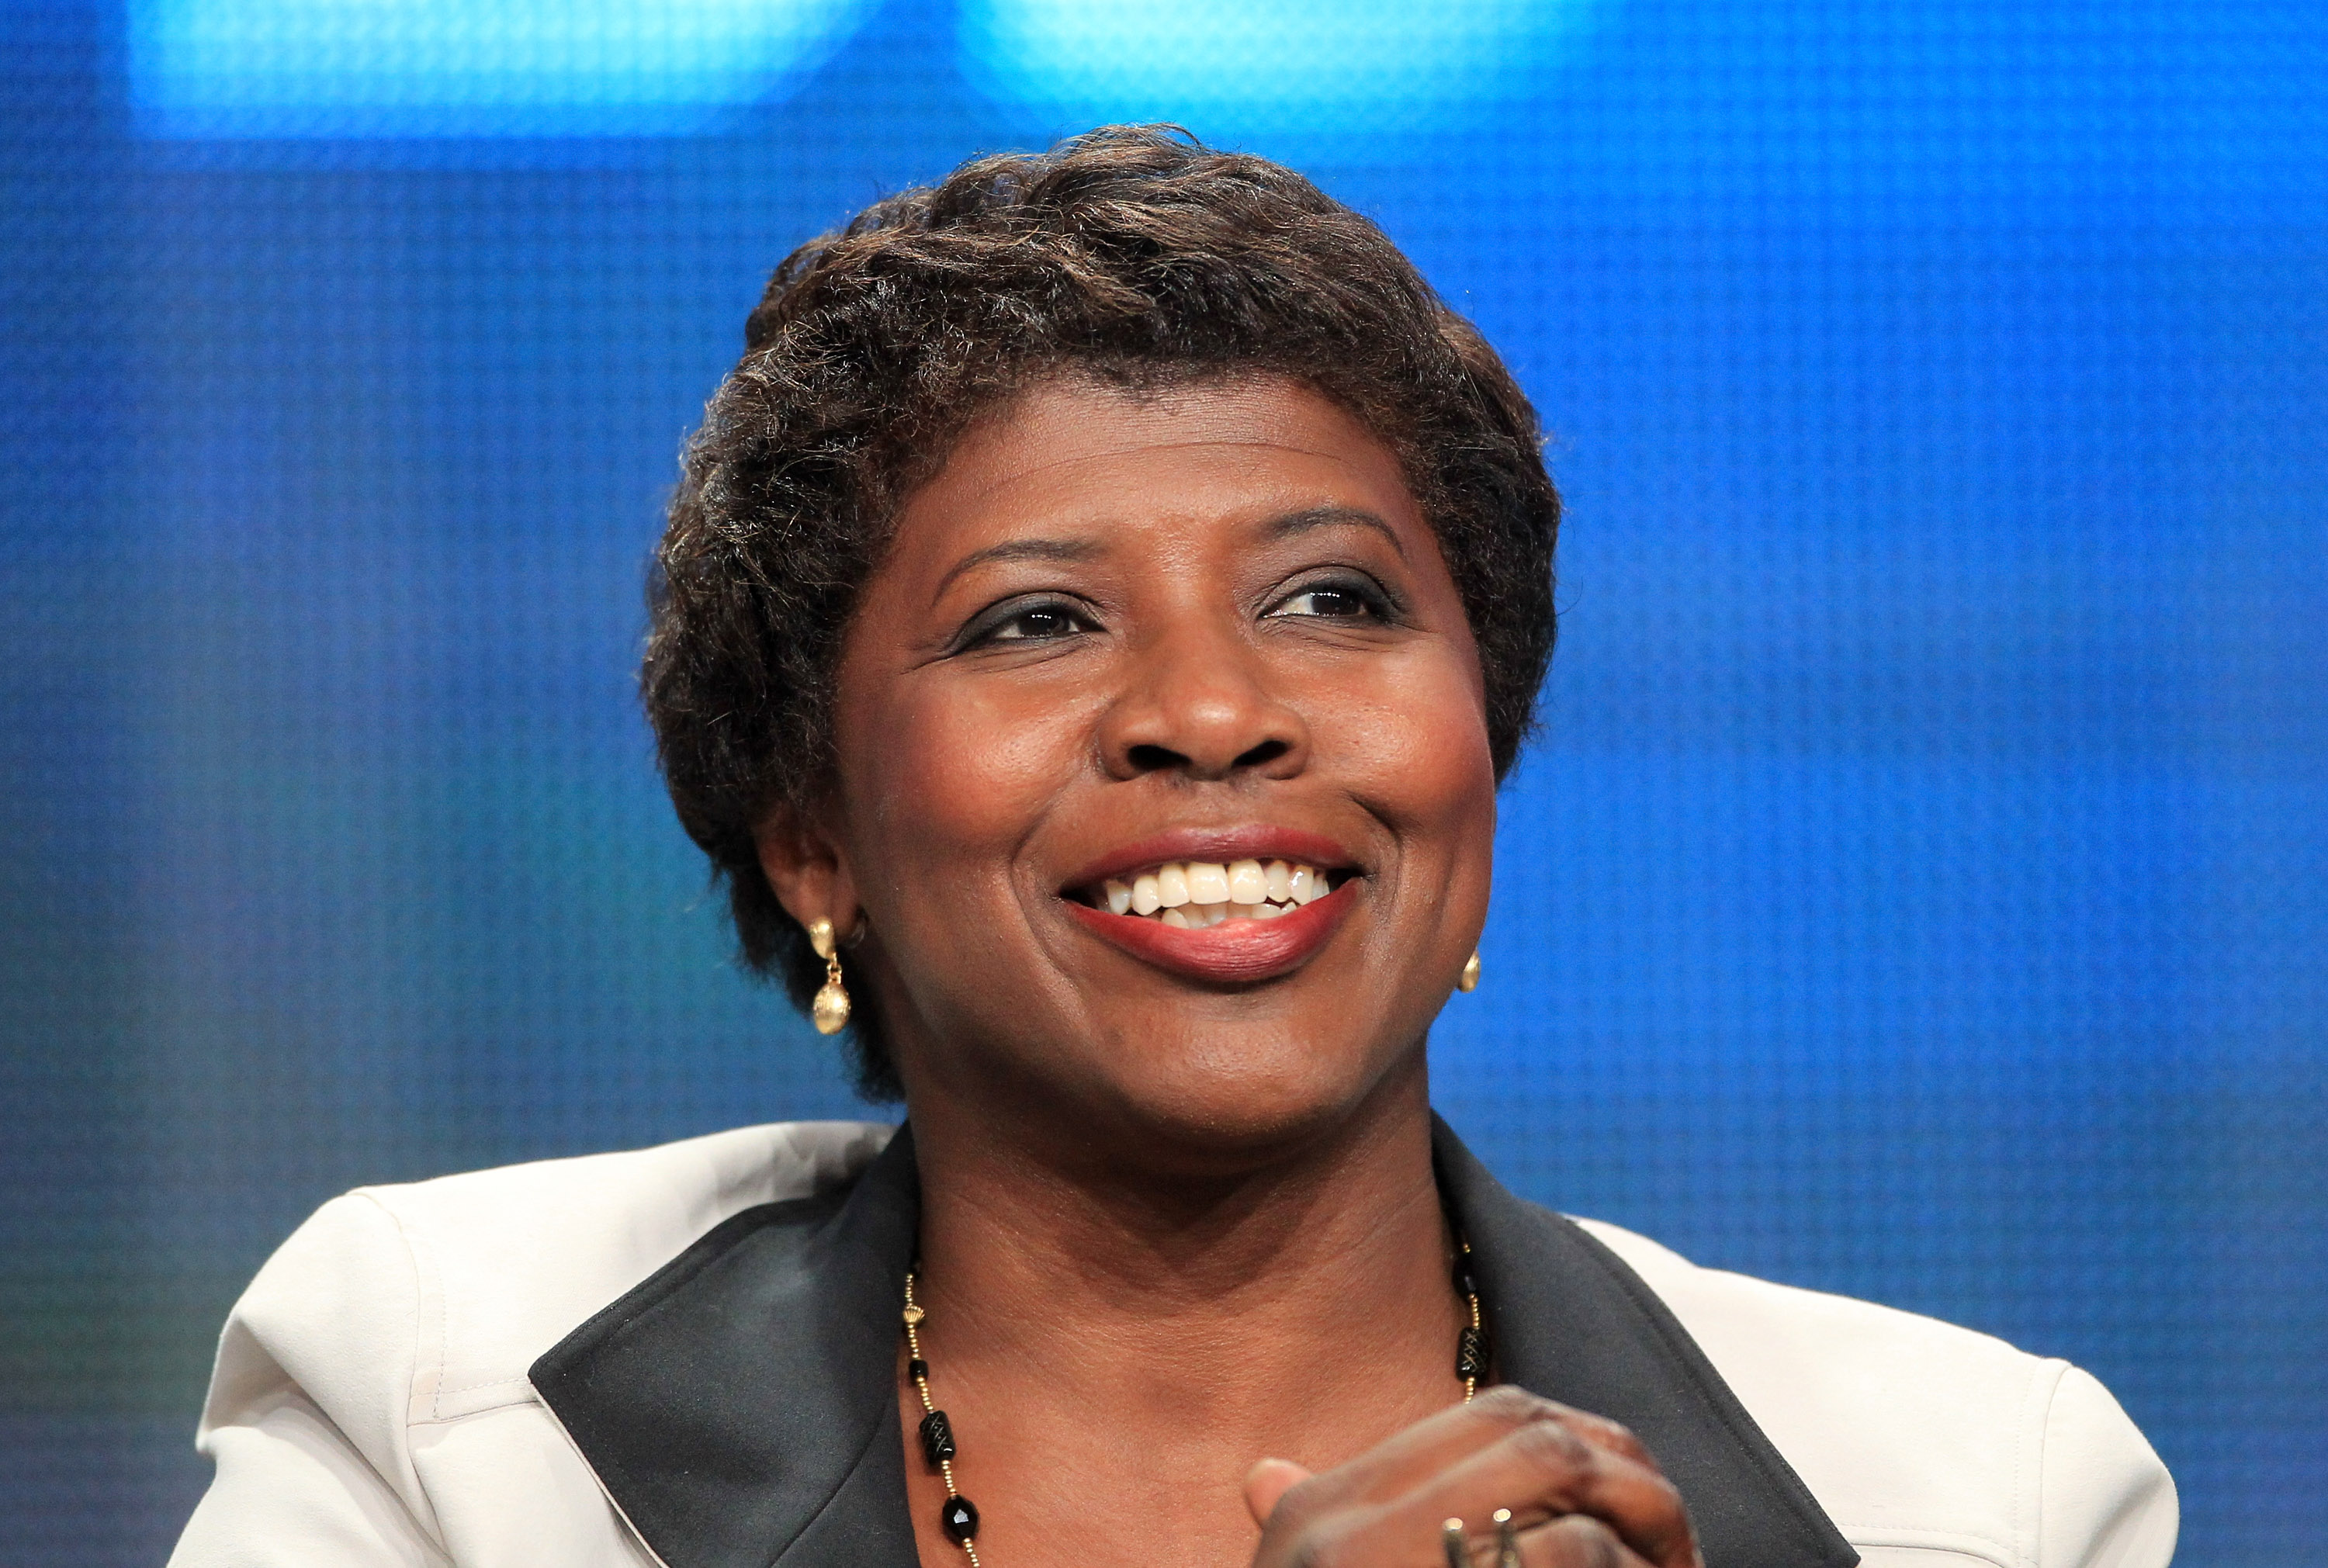 Afro-Latina Journalist Gwen Ifill Is Being Memorialized With a US Postal Service Stamp